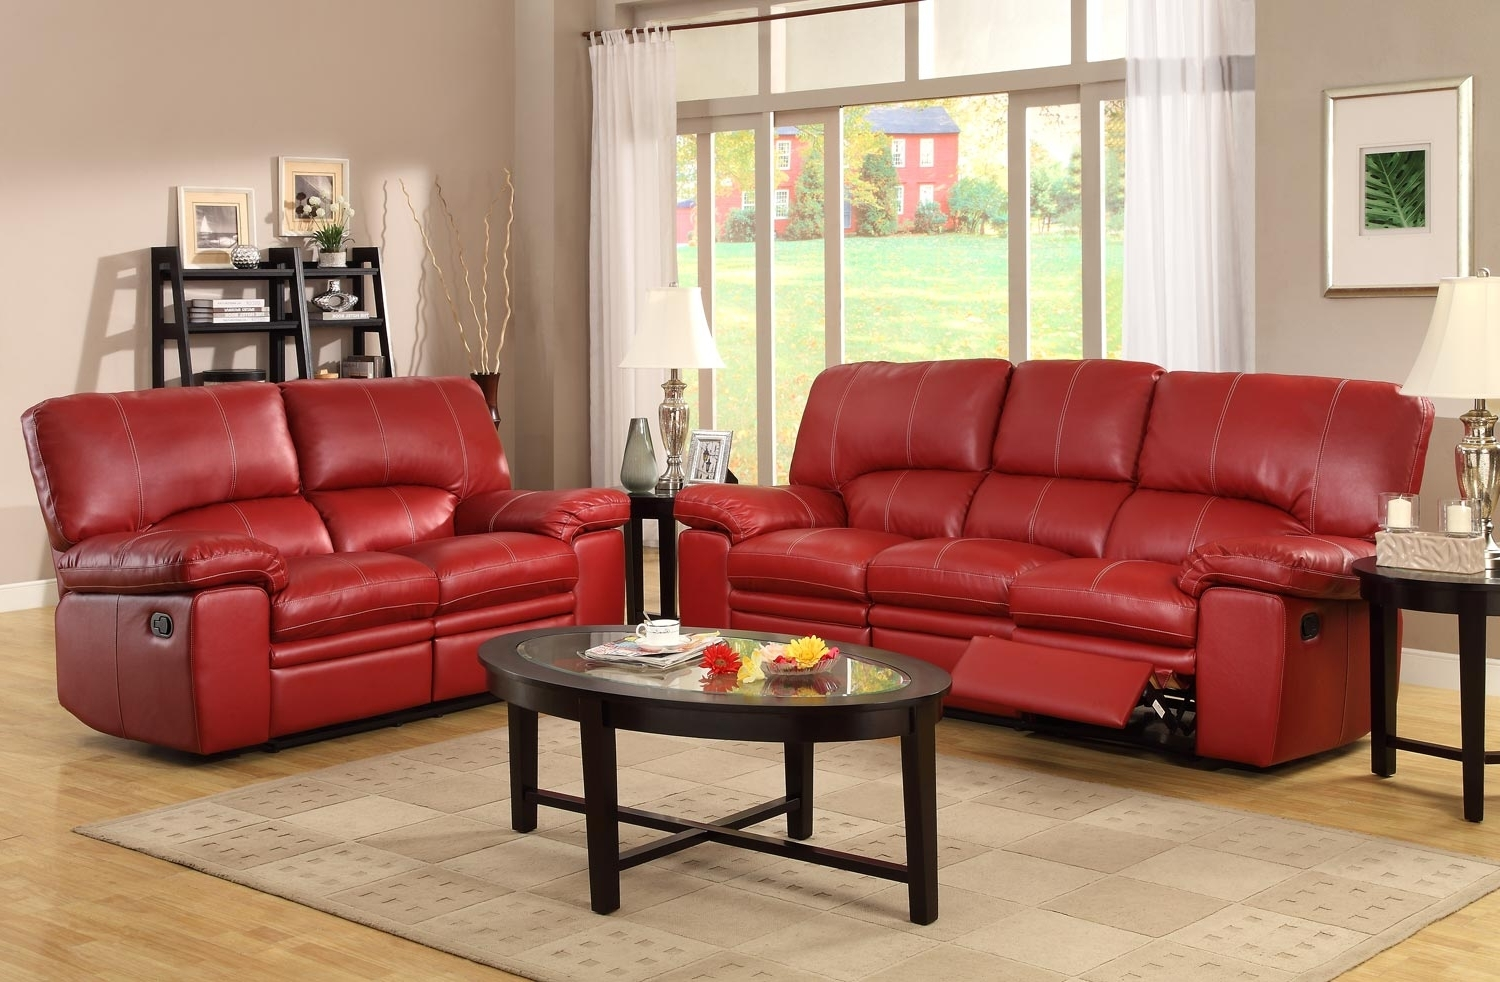 2019 Red Leather Couches For Living Room Pertaining To Great Red Leather Sofa Set 75 In Living Room Sofa Ideas With Red (View 1 of 20)